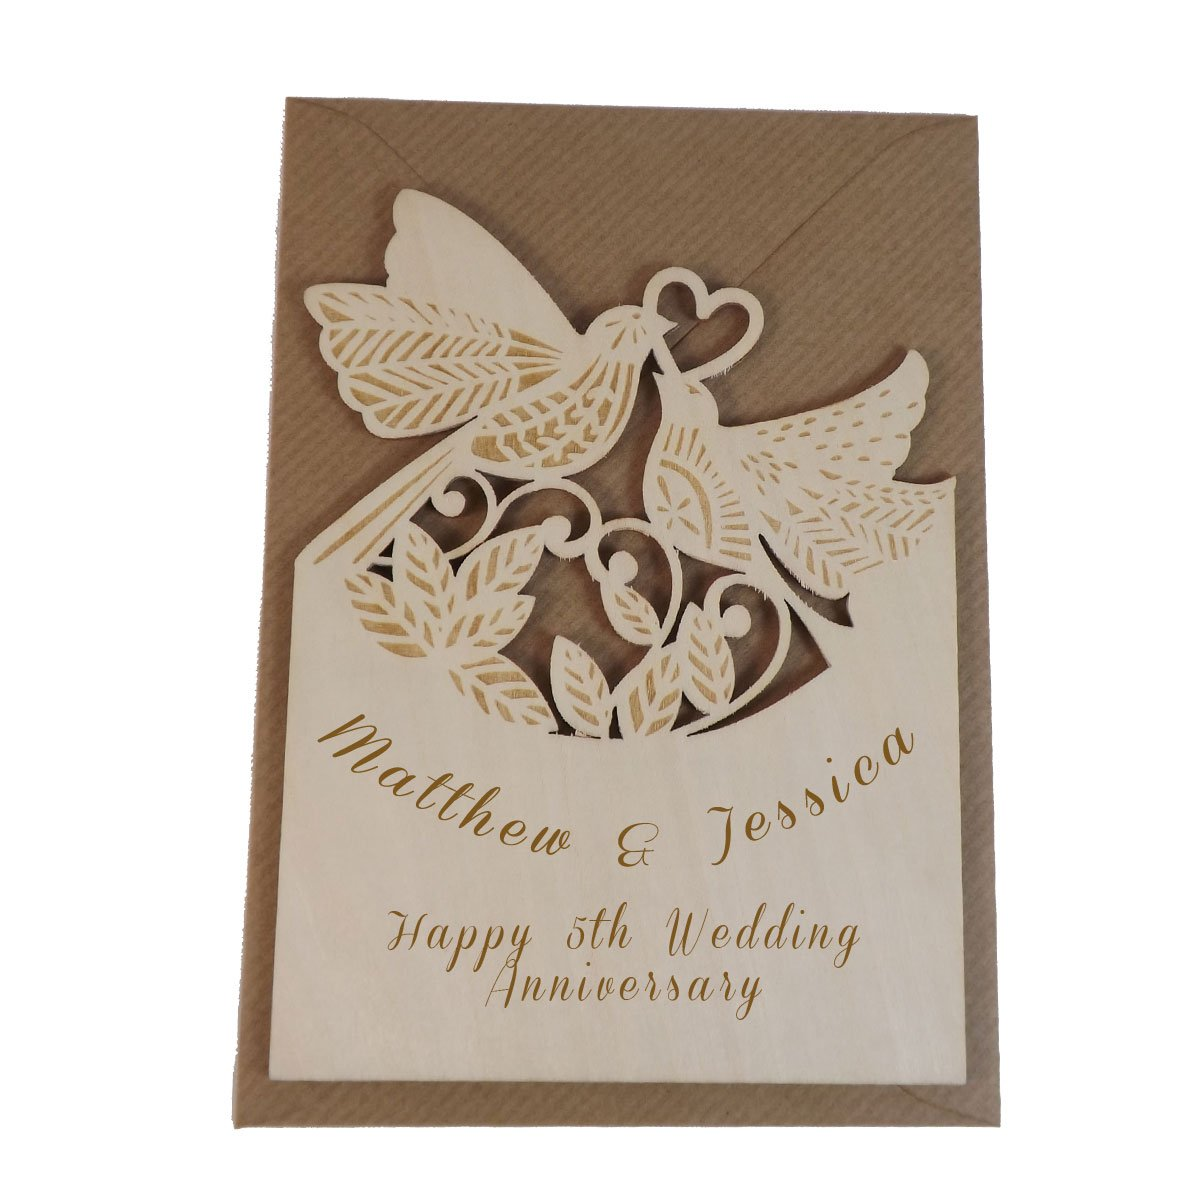 5th Anniversary Personalised Wooden Card Amazoncouk Office Products